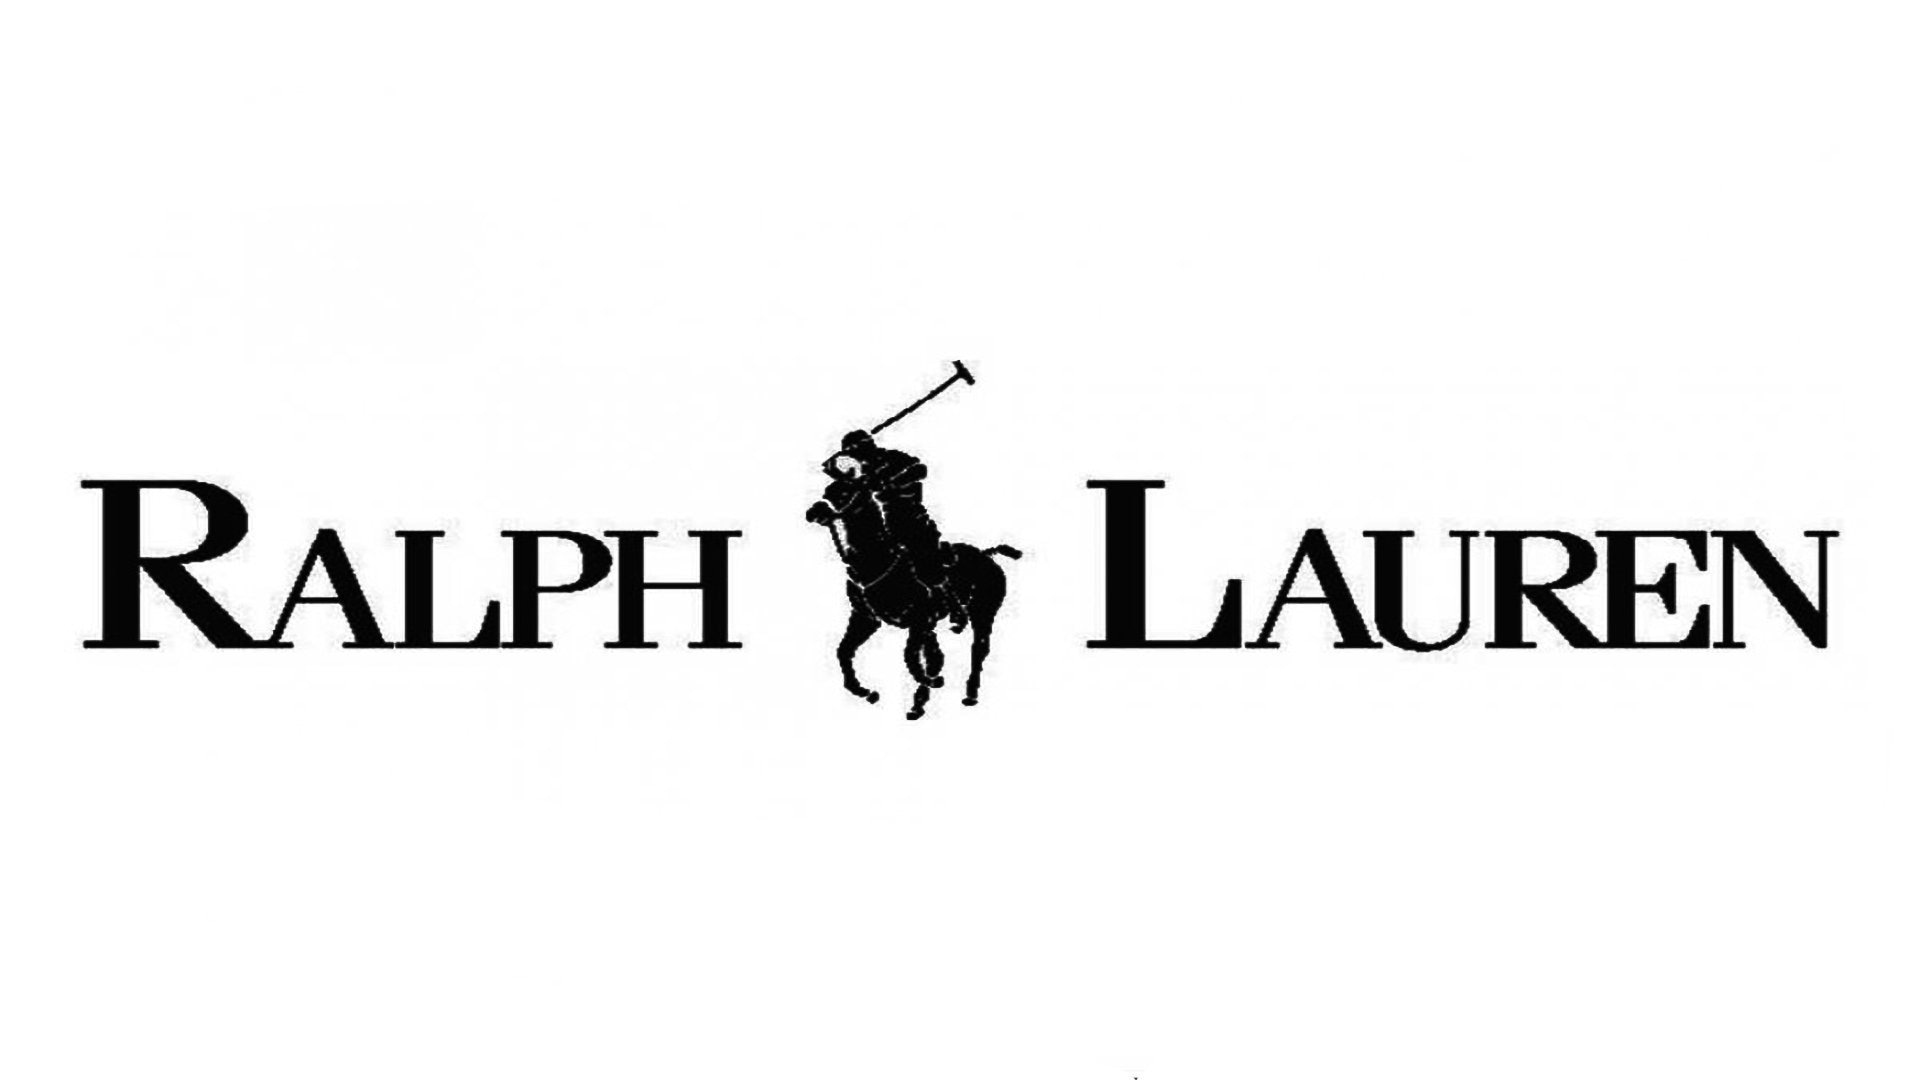 More Ralph Lauren deals